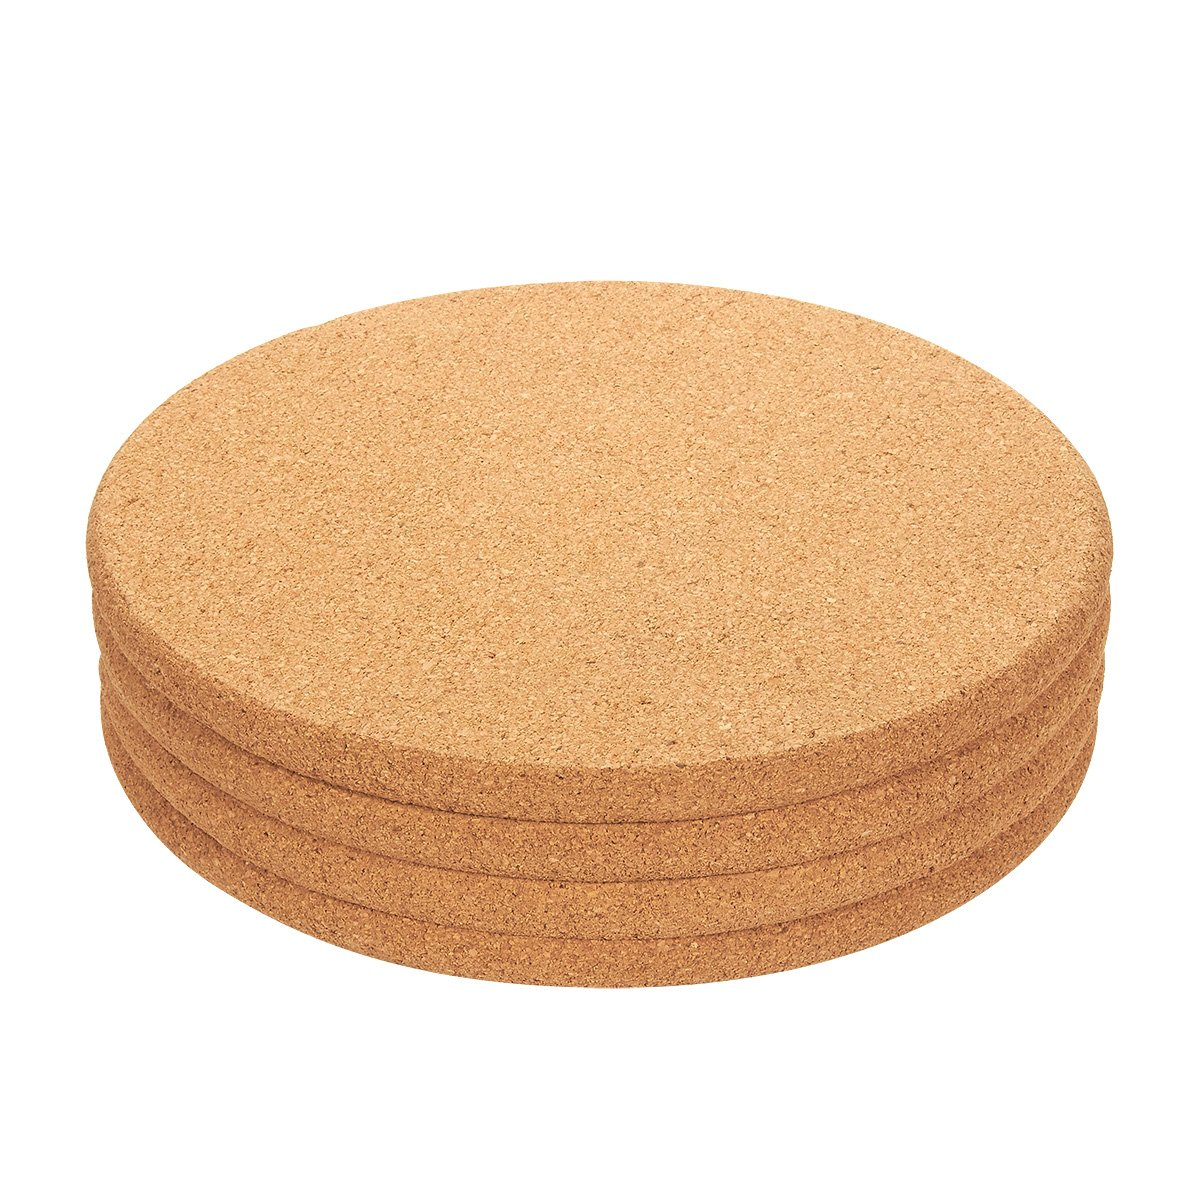 Juvale 4-Pack Cork Trivet Set - Round Corkboard Placemats Kitchen Hot Pads for Hot Pots, Pans, and Kettles, 9 x 9 x 0.5 Inches by Juvale